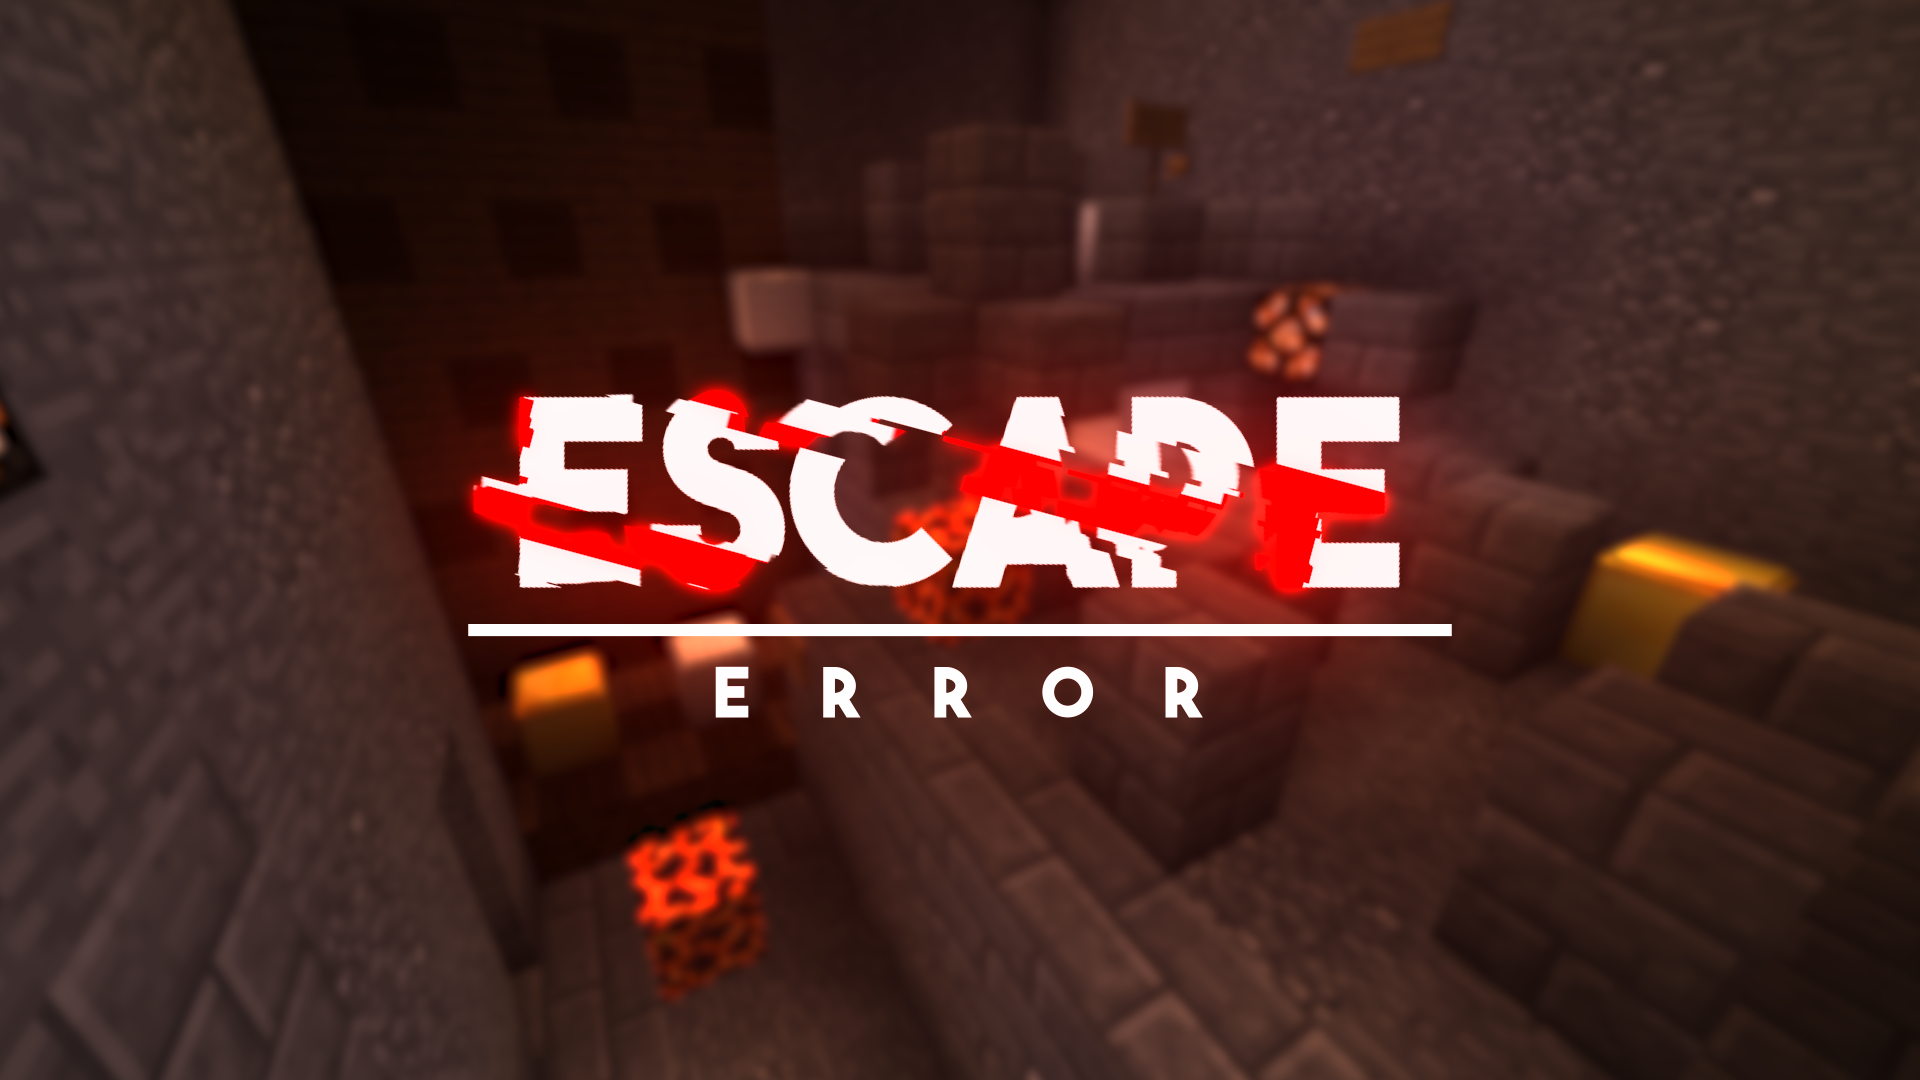 Escape: Error